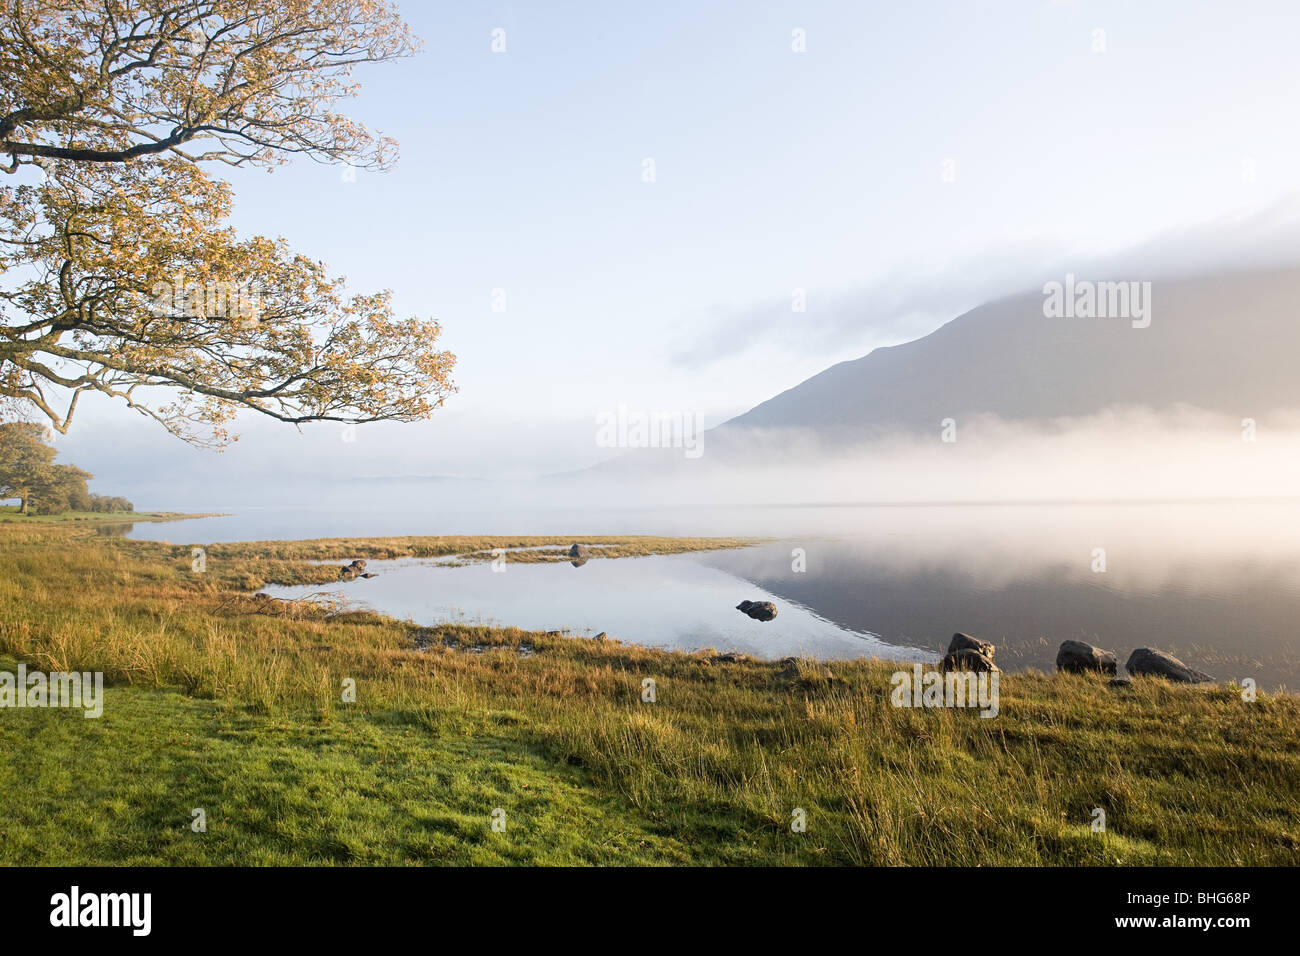 Bassenthwaite Lake, Lake District, Cumbria, England - Stock Image